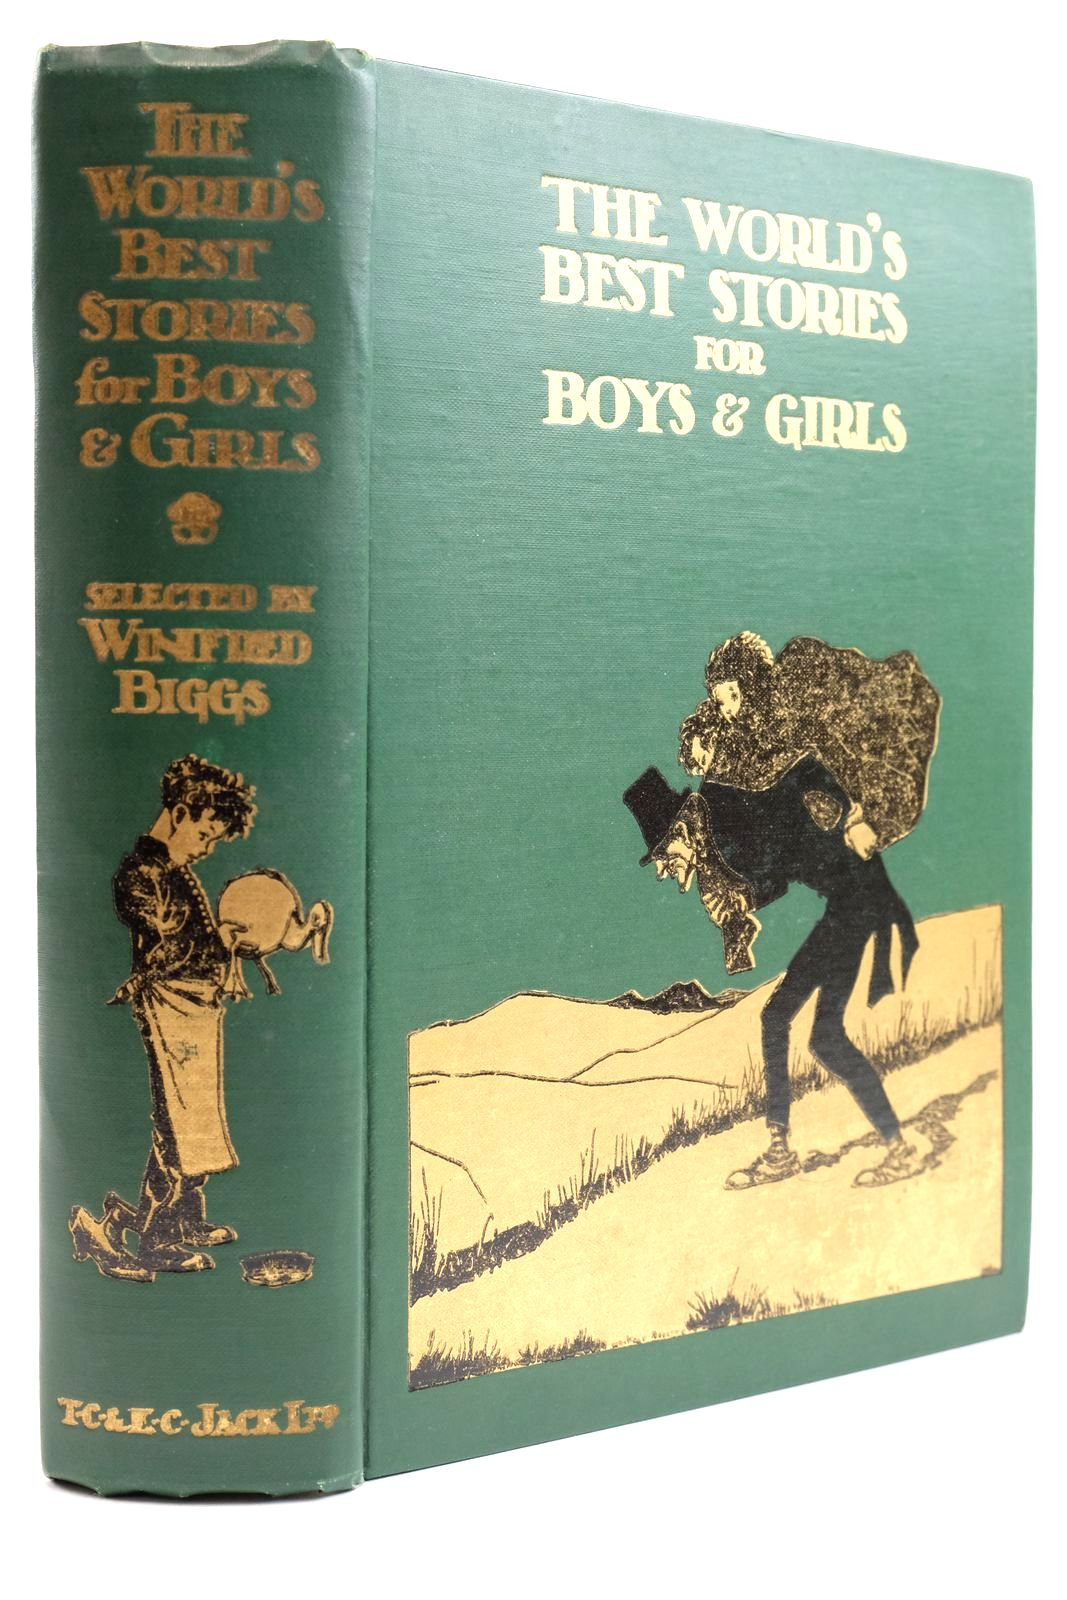 Photo of THE WORLD'S BEST STORIES FOR BOYS & GIRLS- Stock Number: 2133906